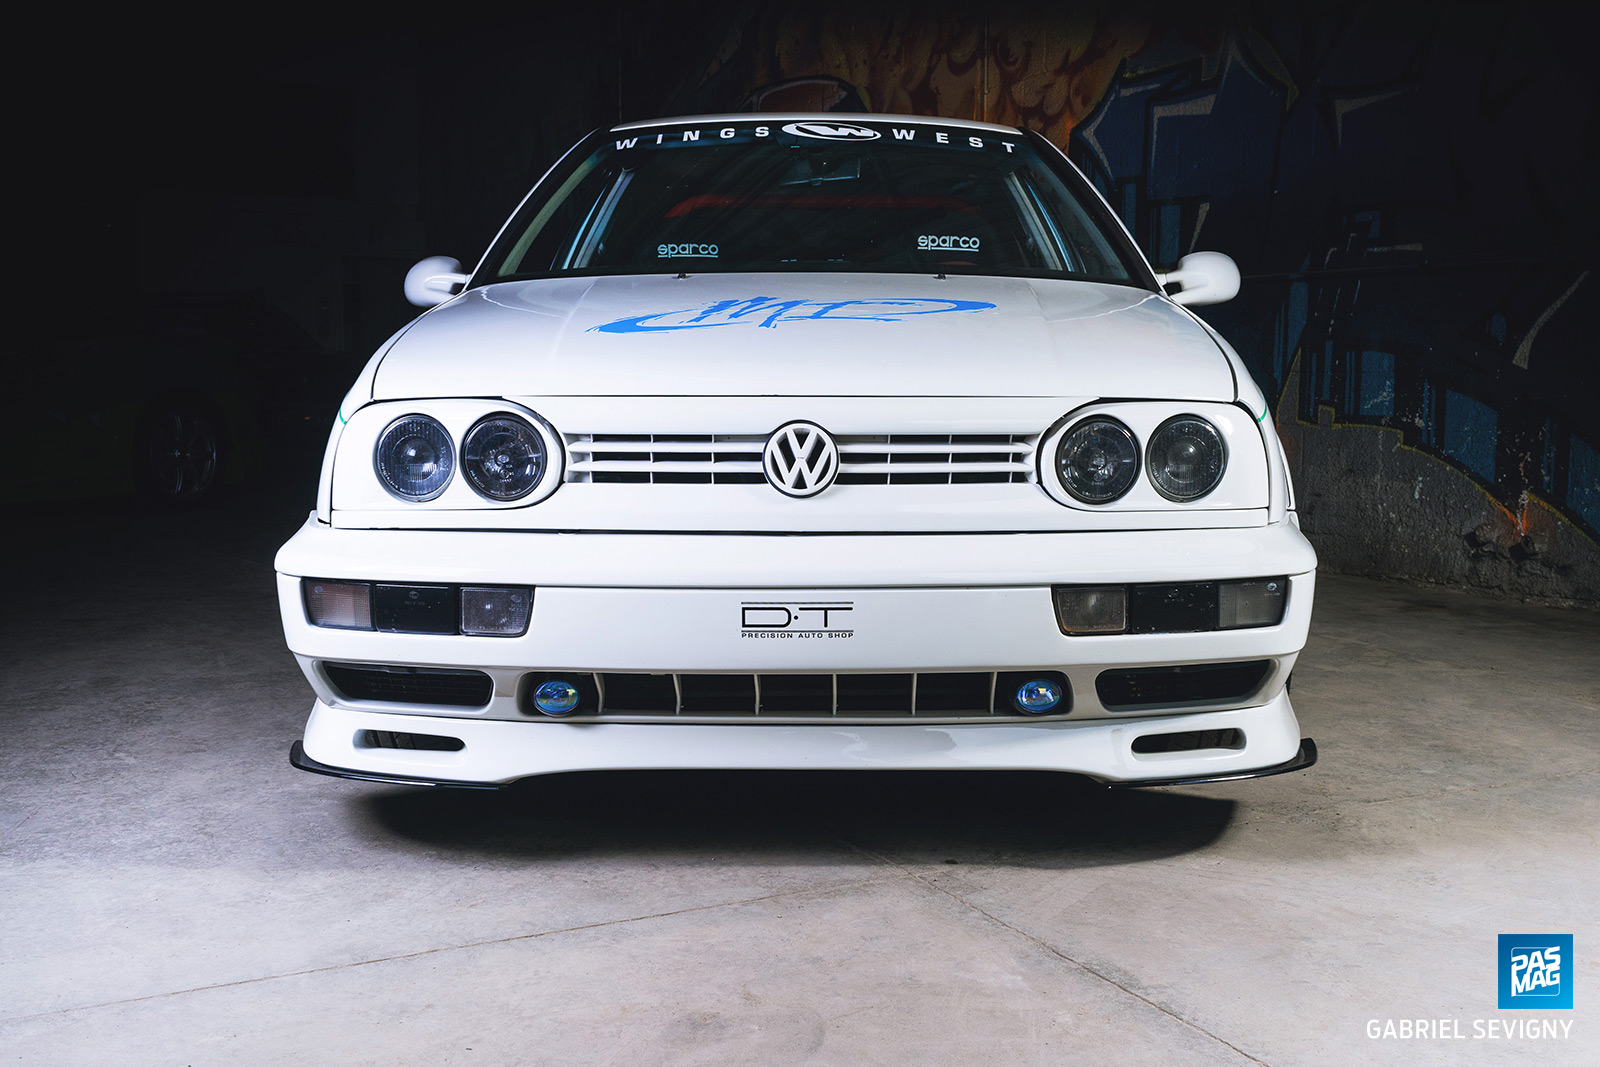 2018 PASMAG 150 Dominic Dubreuil 1996 VW Jetta Fast and Furious 08